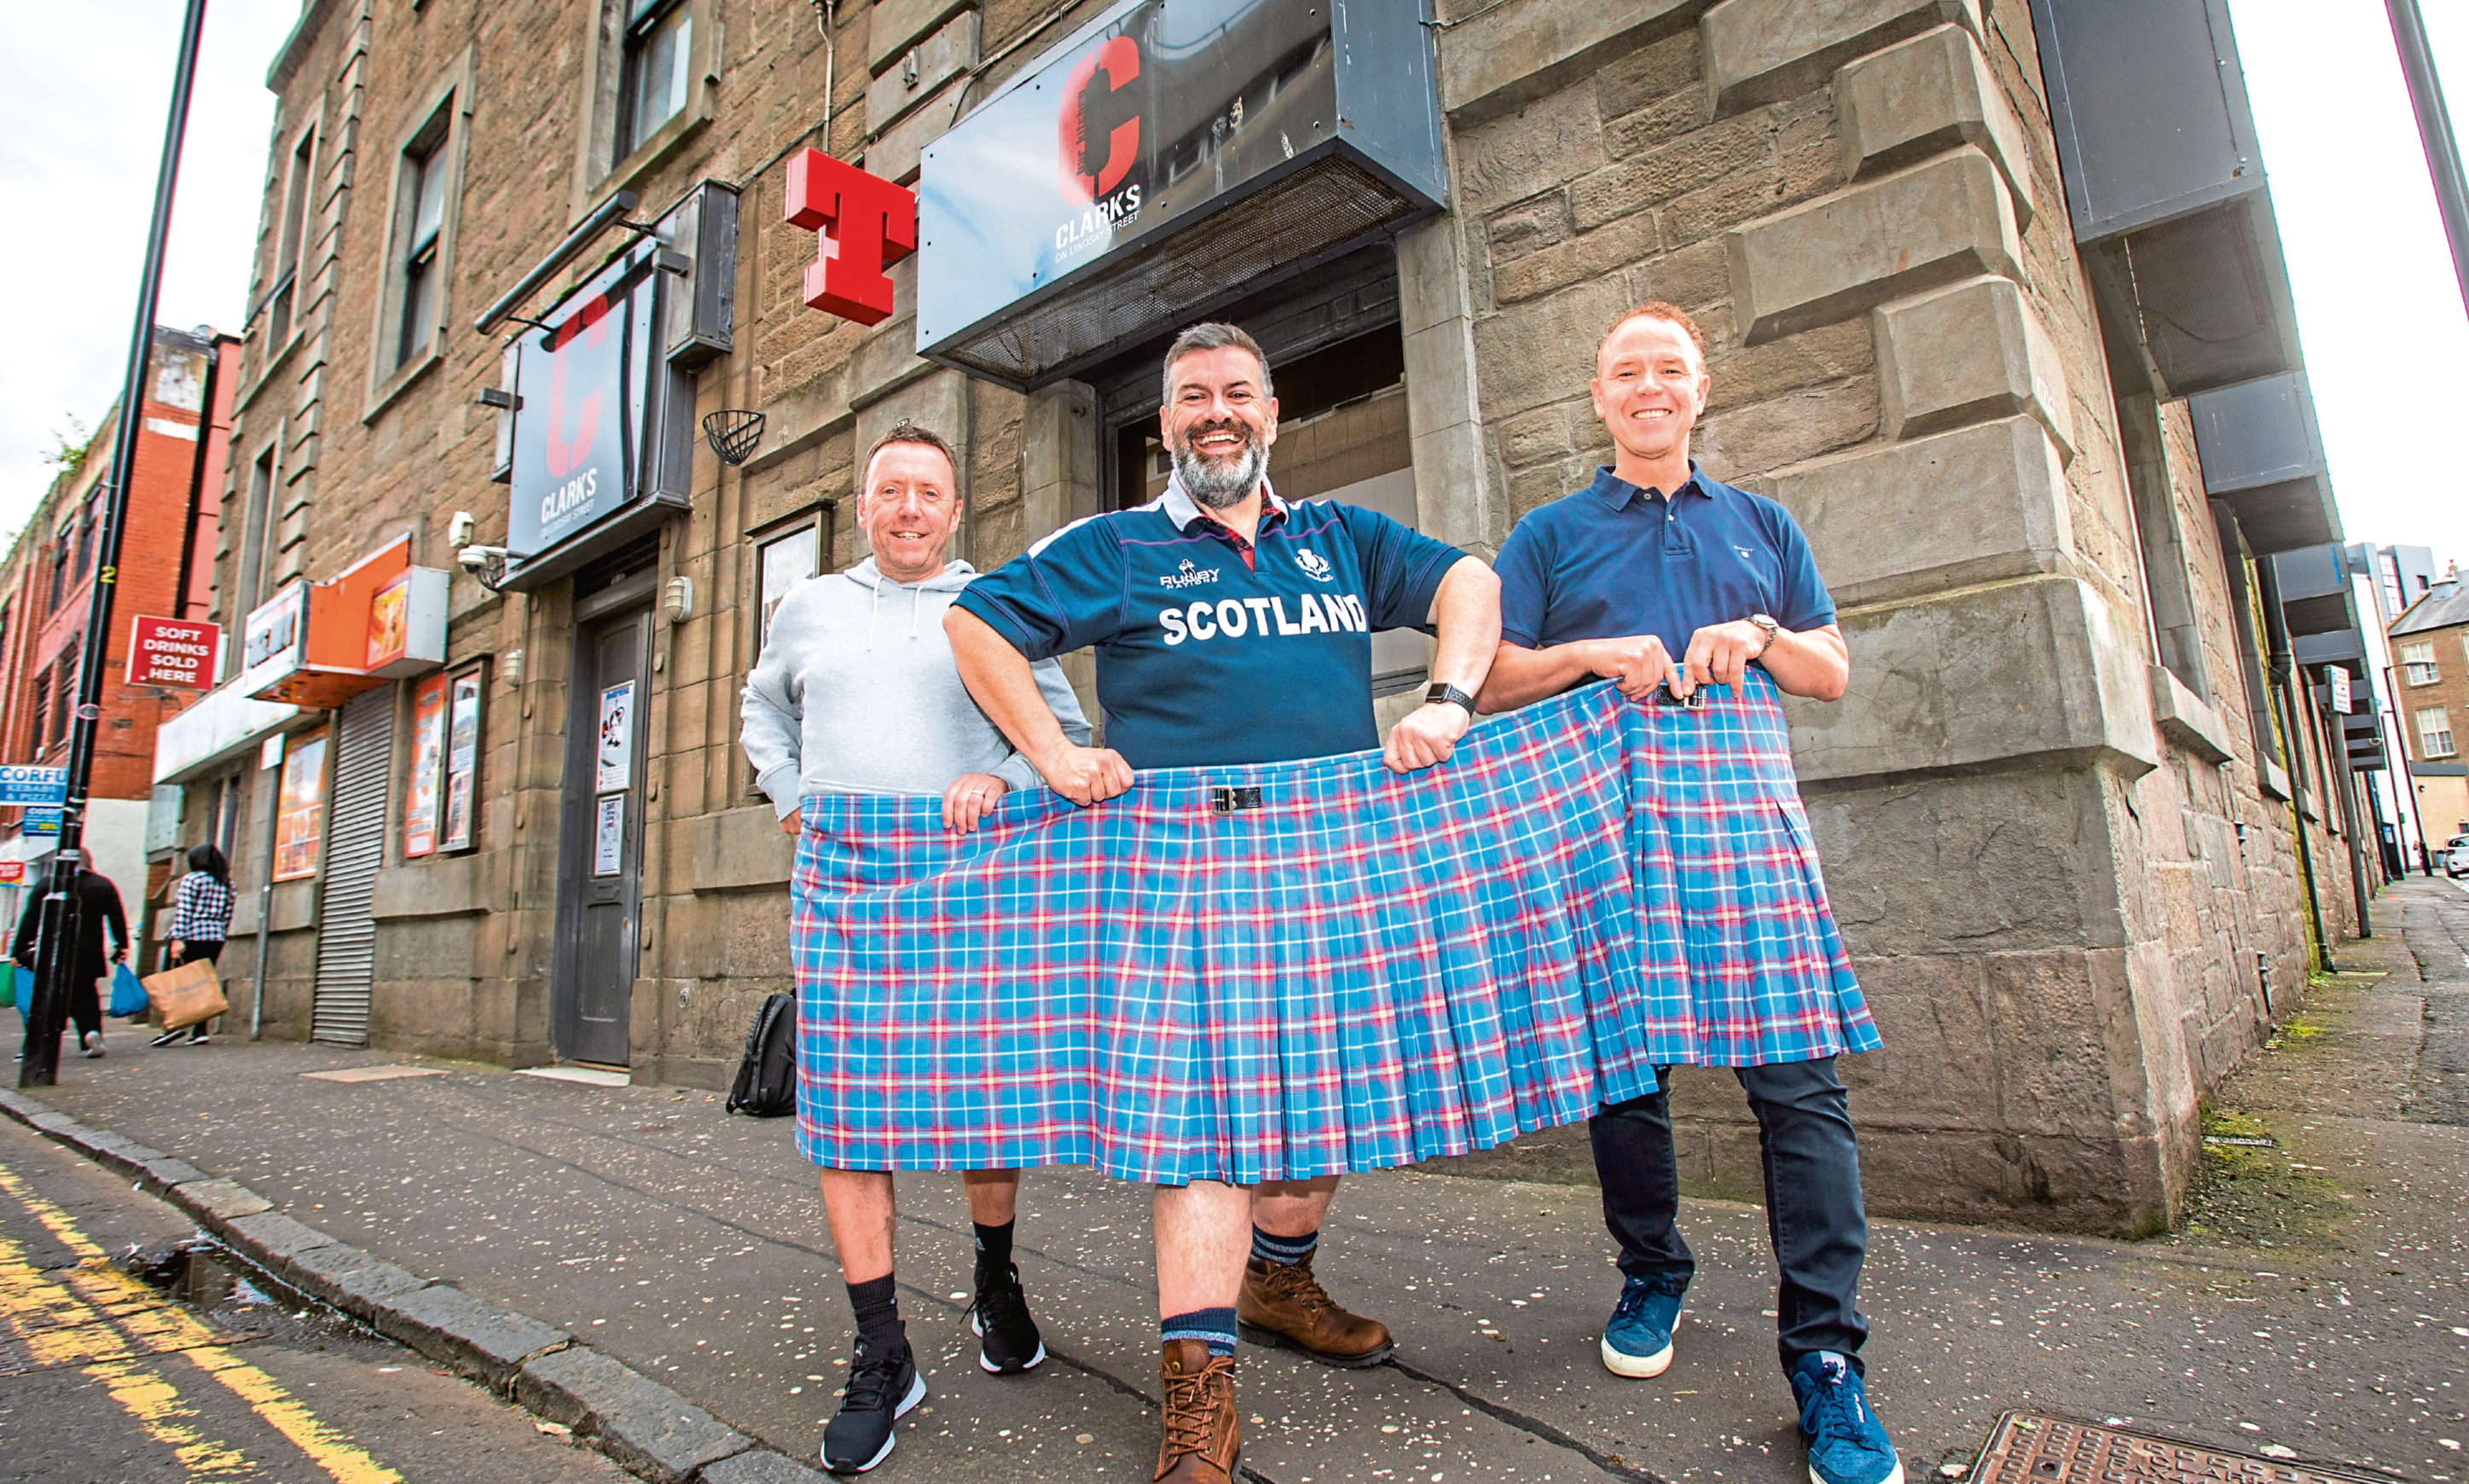 From left: Scott Clark, Tom Urie and Gus Robb with the kilt that used to fit Tom before he lost weight.